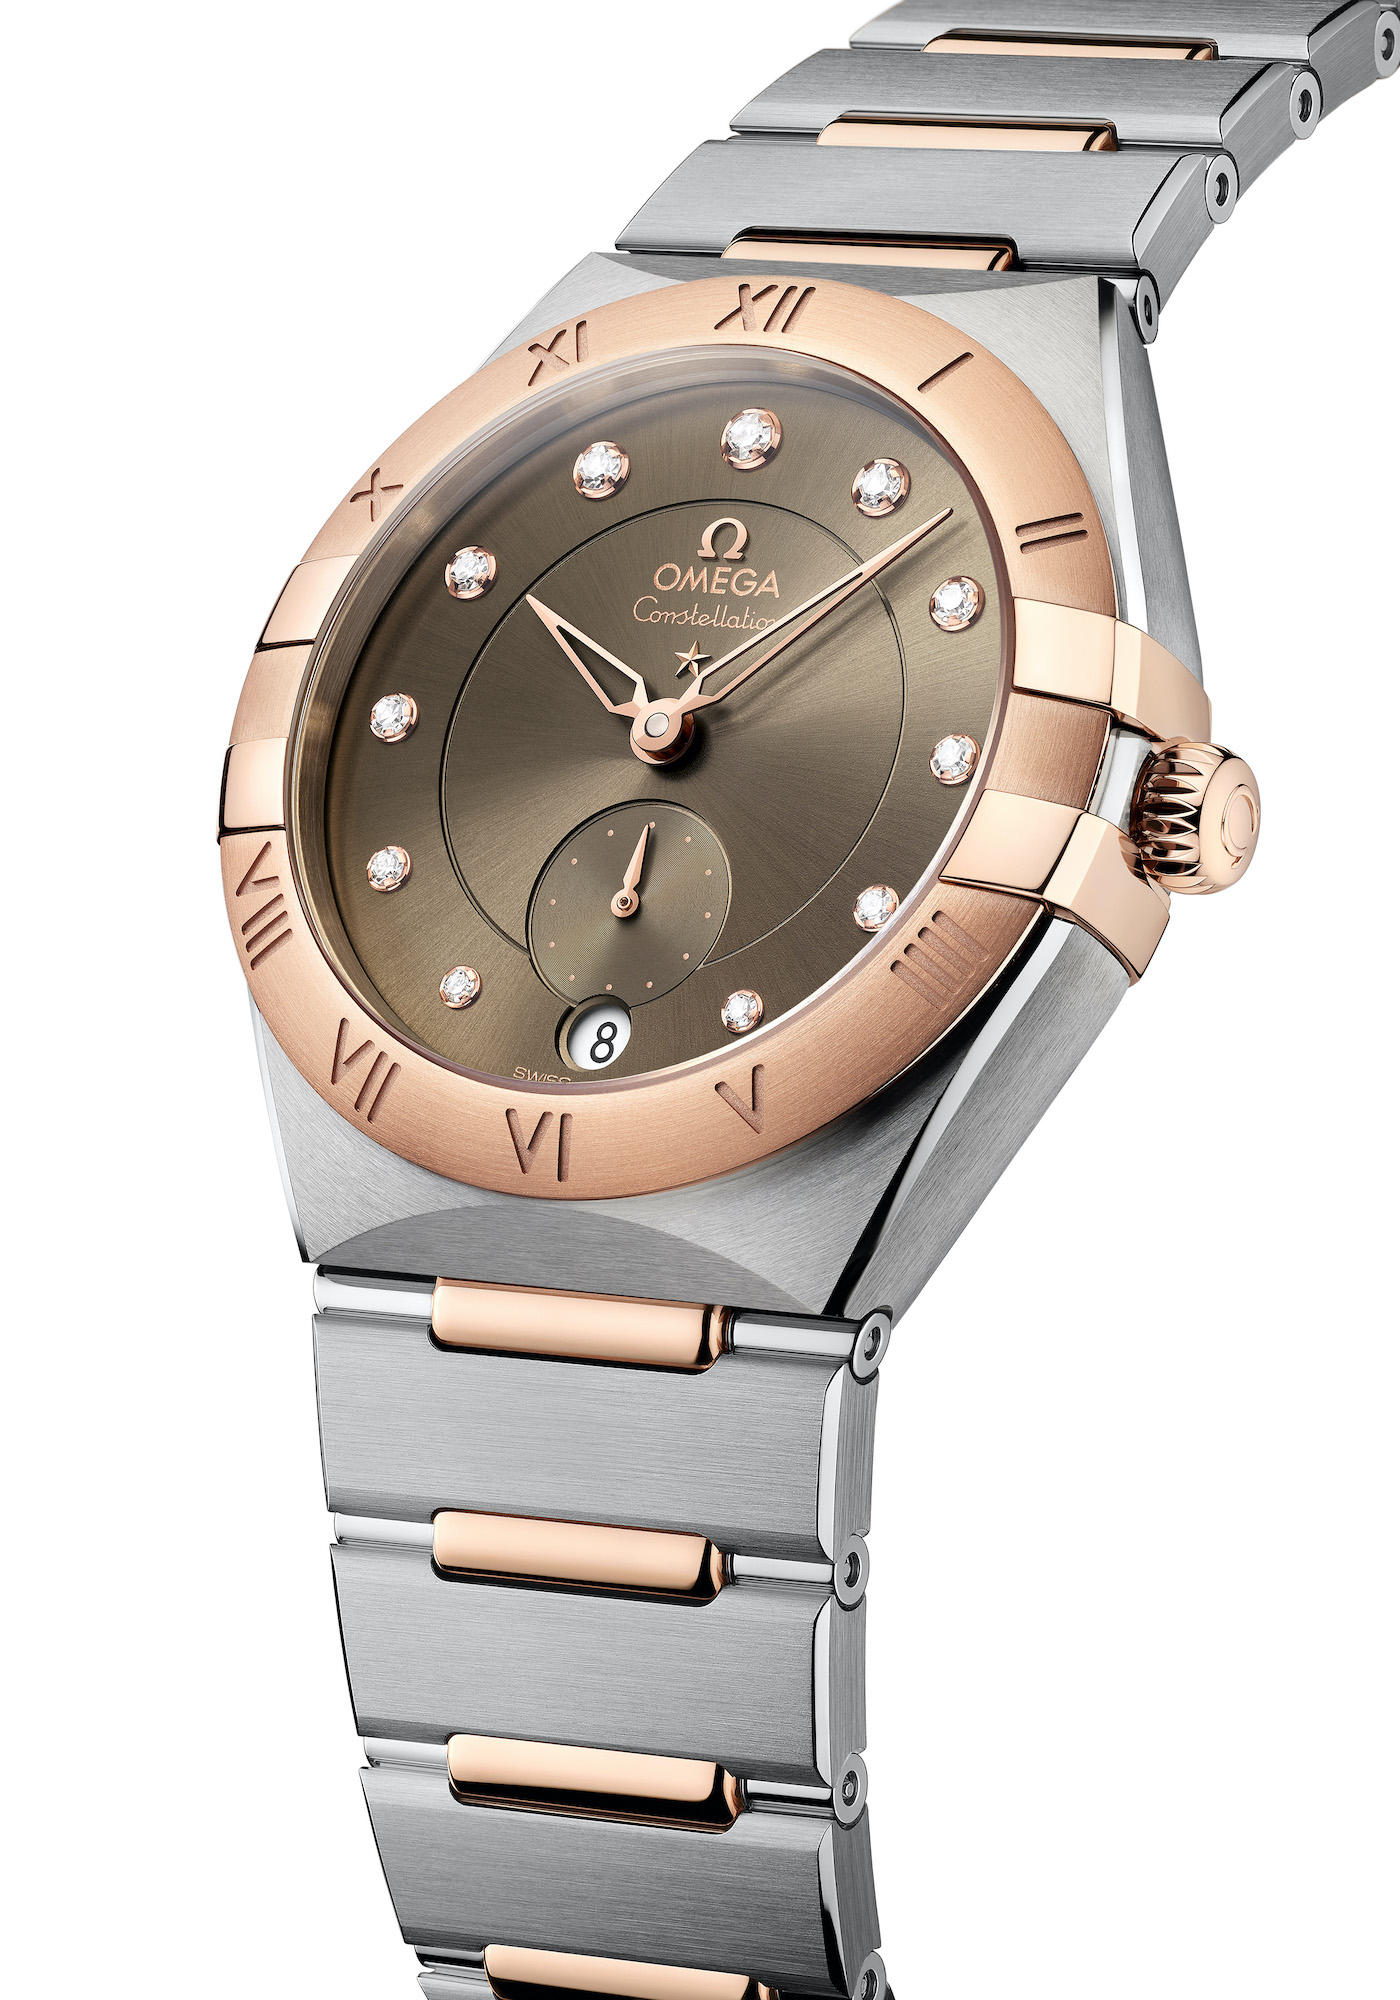 Omega Constellation Small Seconds 131.20.34.20.63.001 esfera